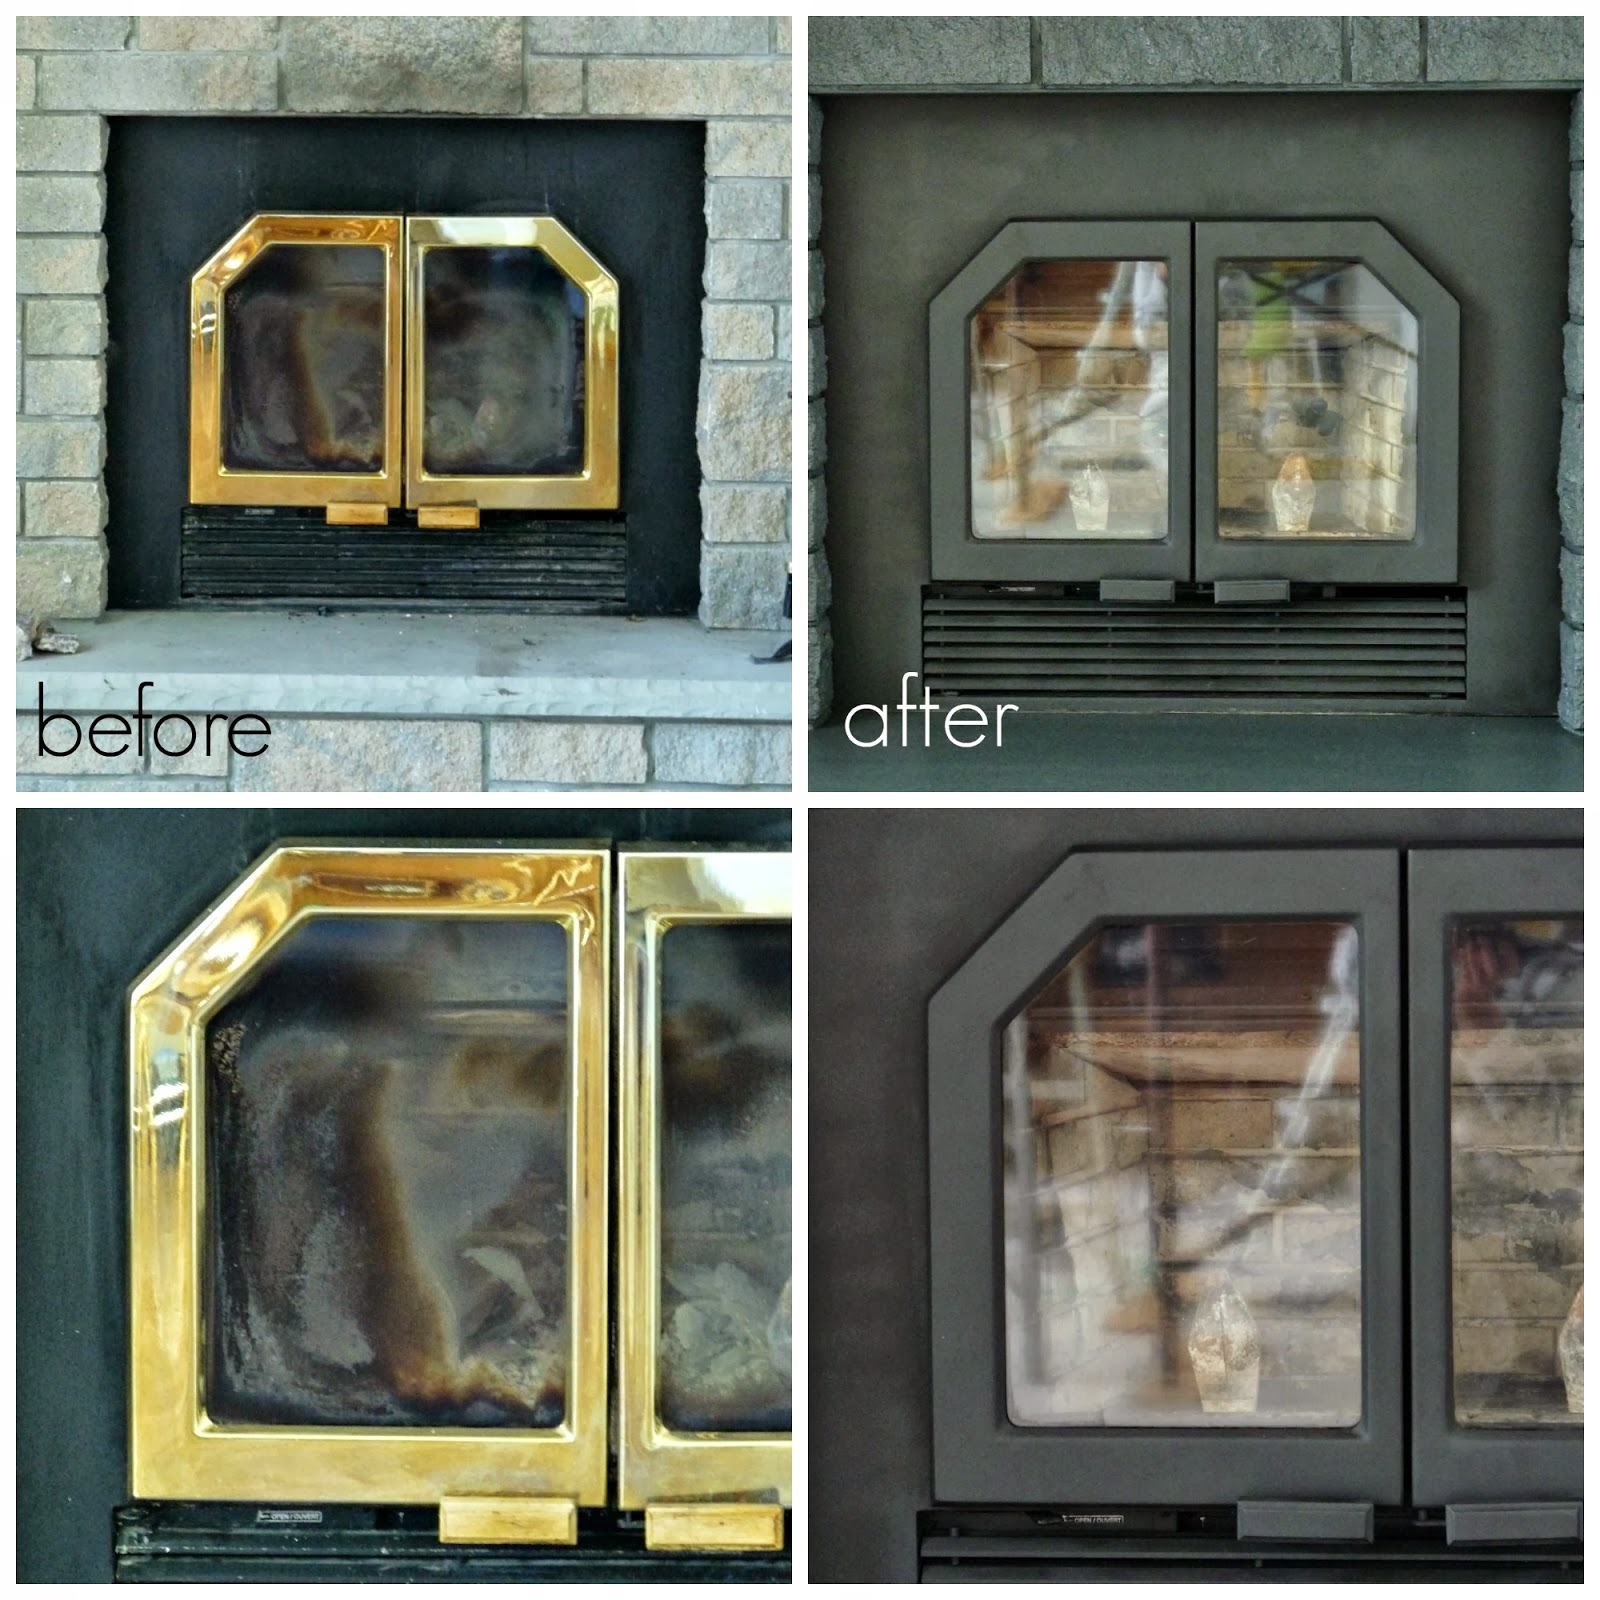 Replacement Glass Doors For Fireplace Insert Choice Image - Glass ...